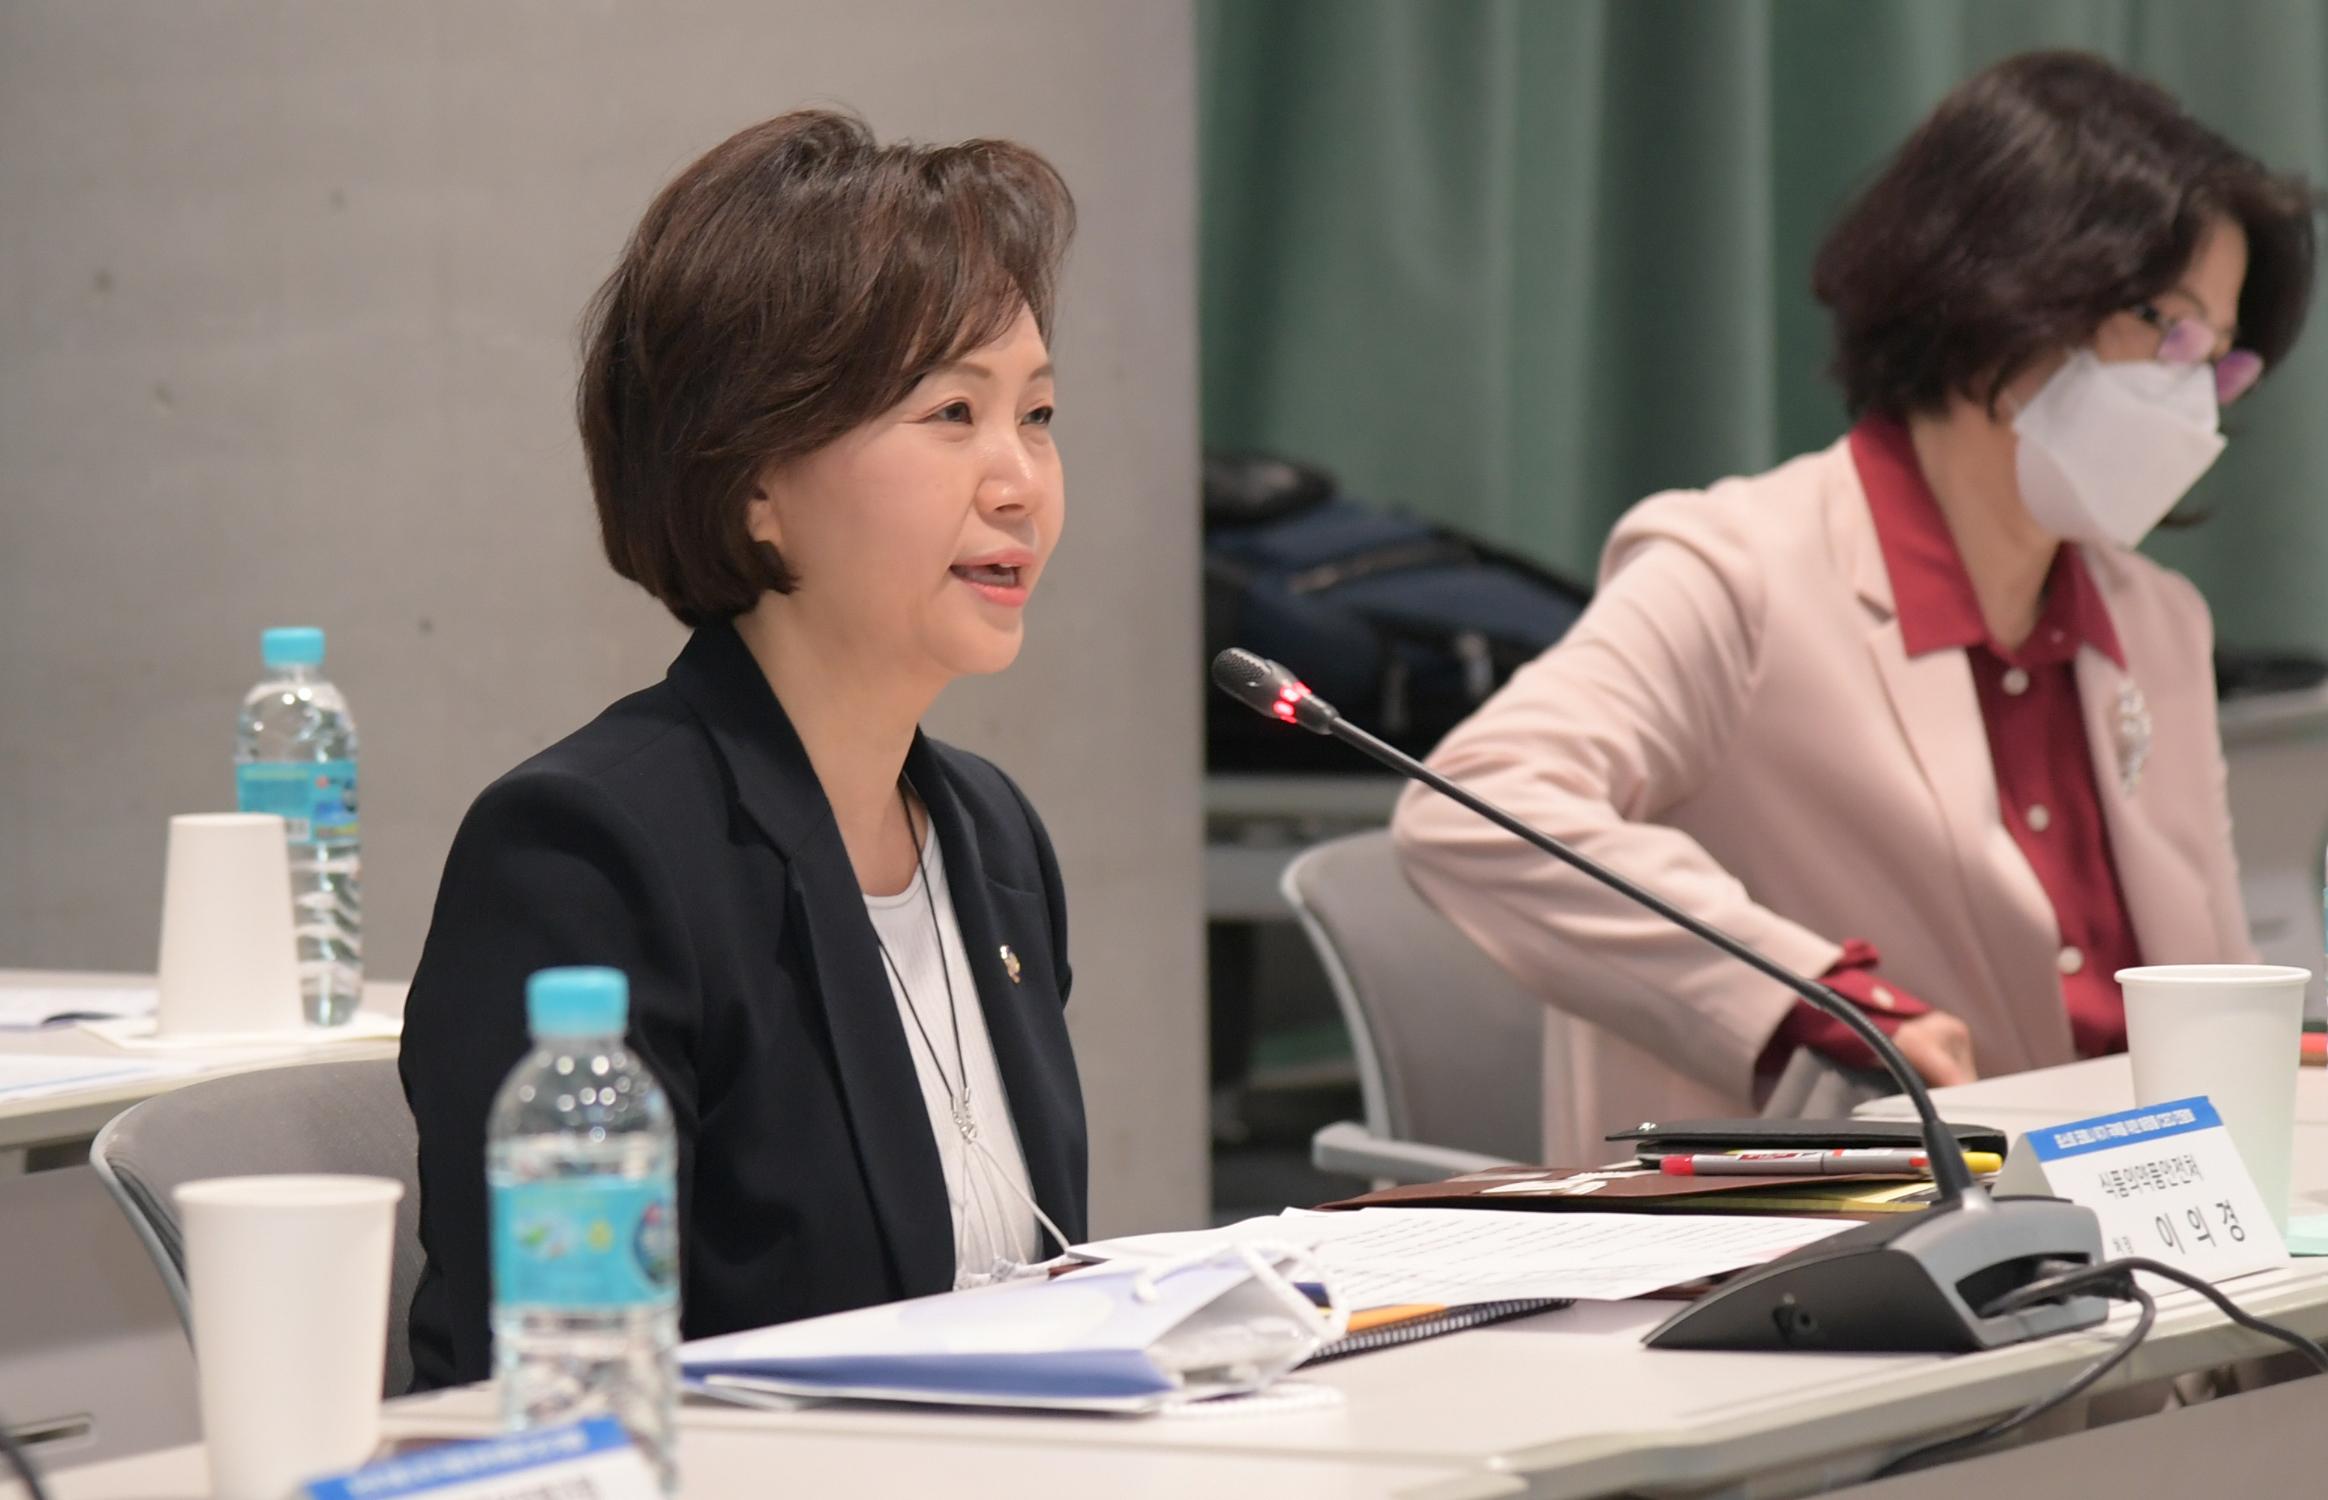 [May 29, 2020] Minister of Food and Drug Safety visits customized cosmetics lab and attends CEO Meeting